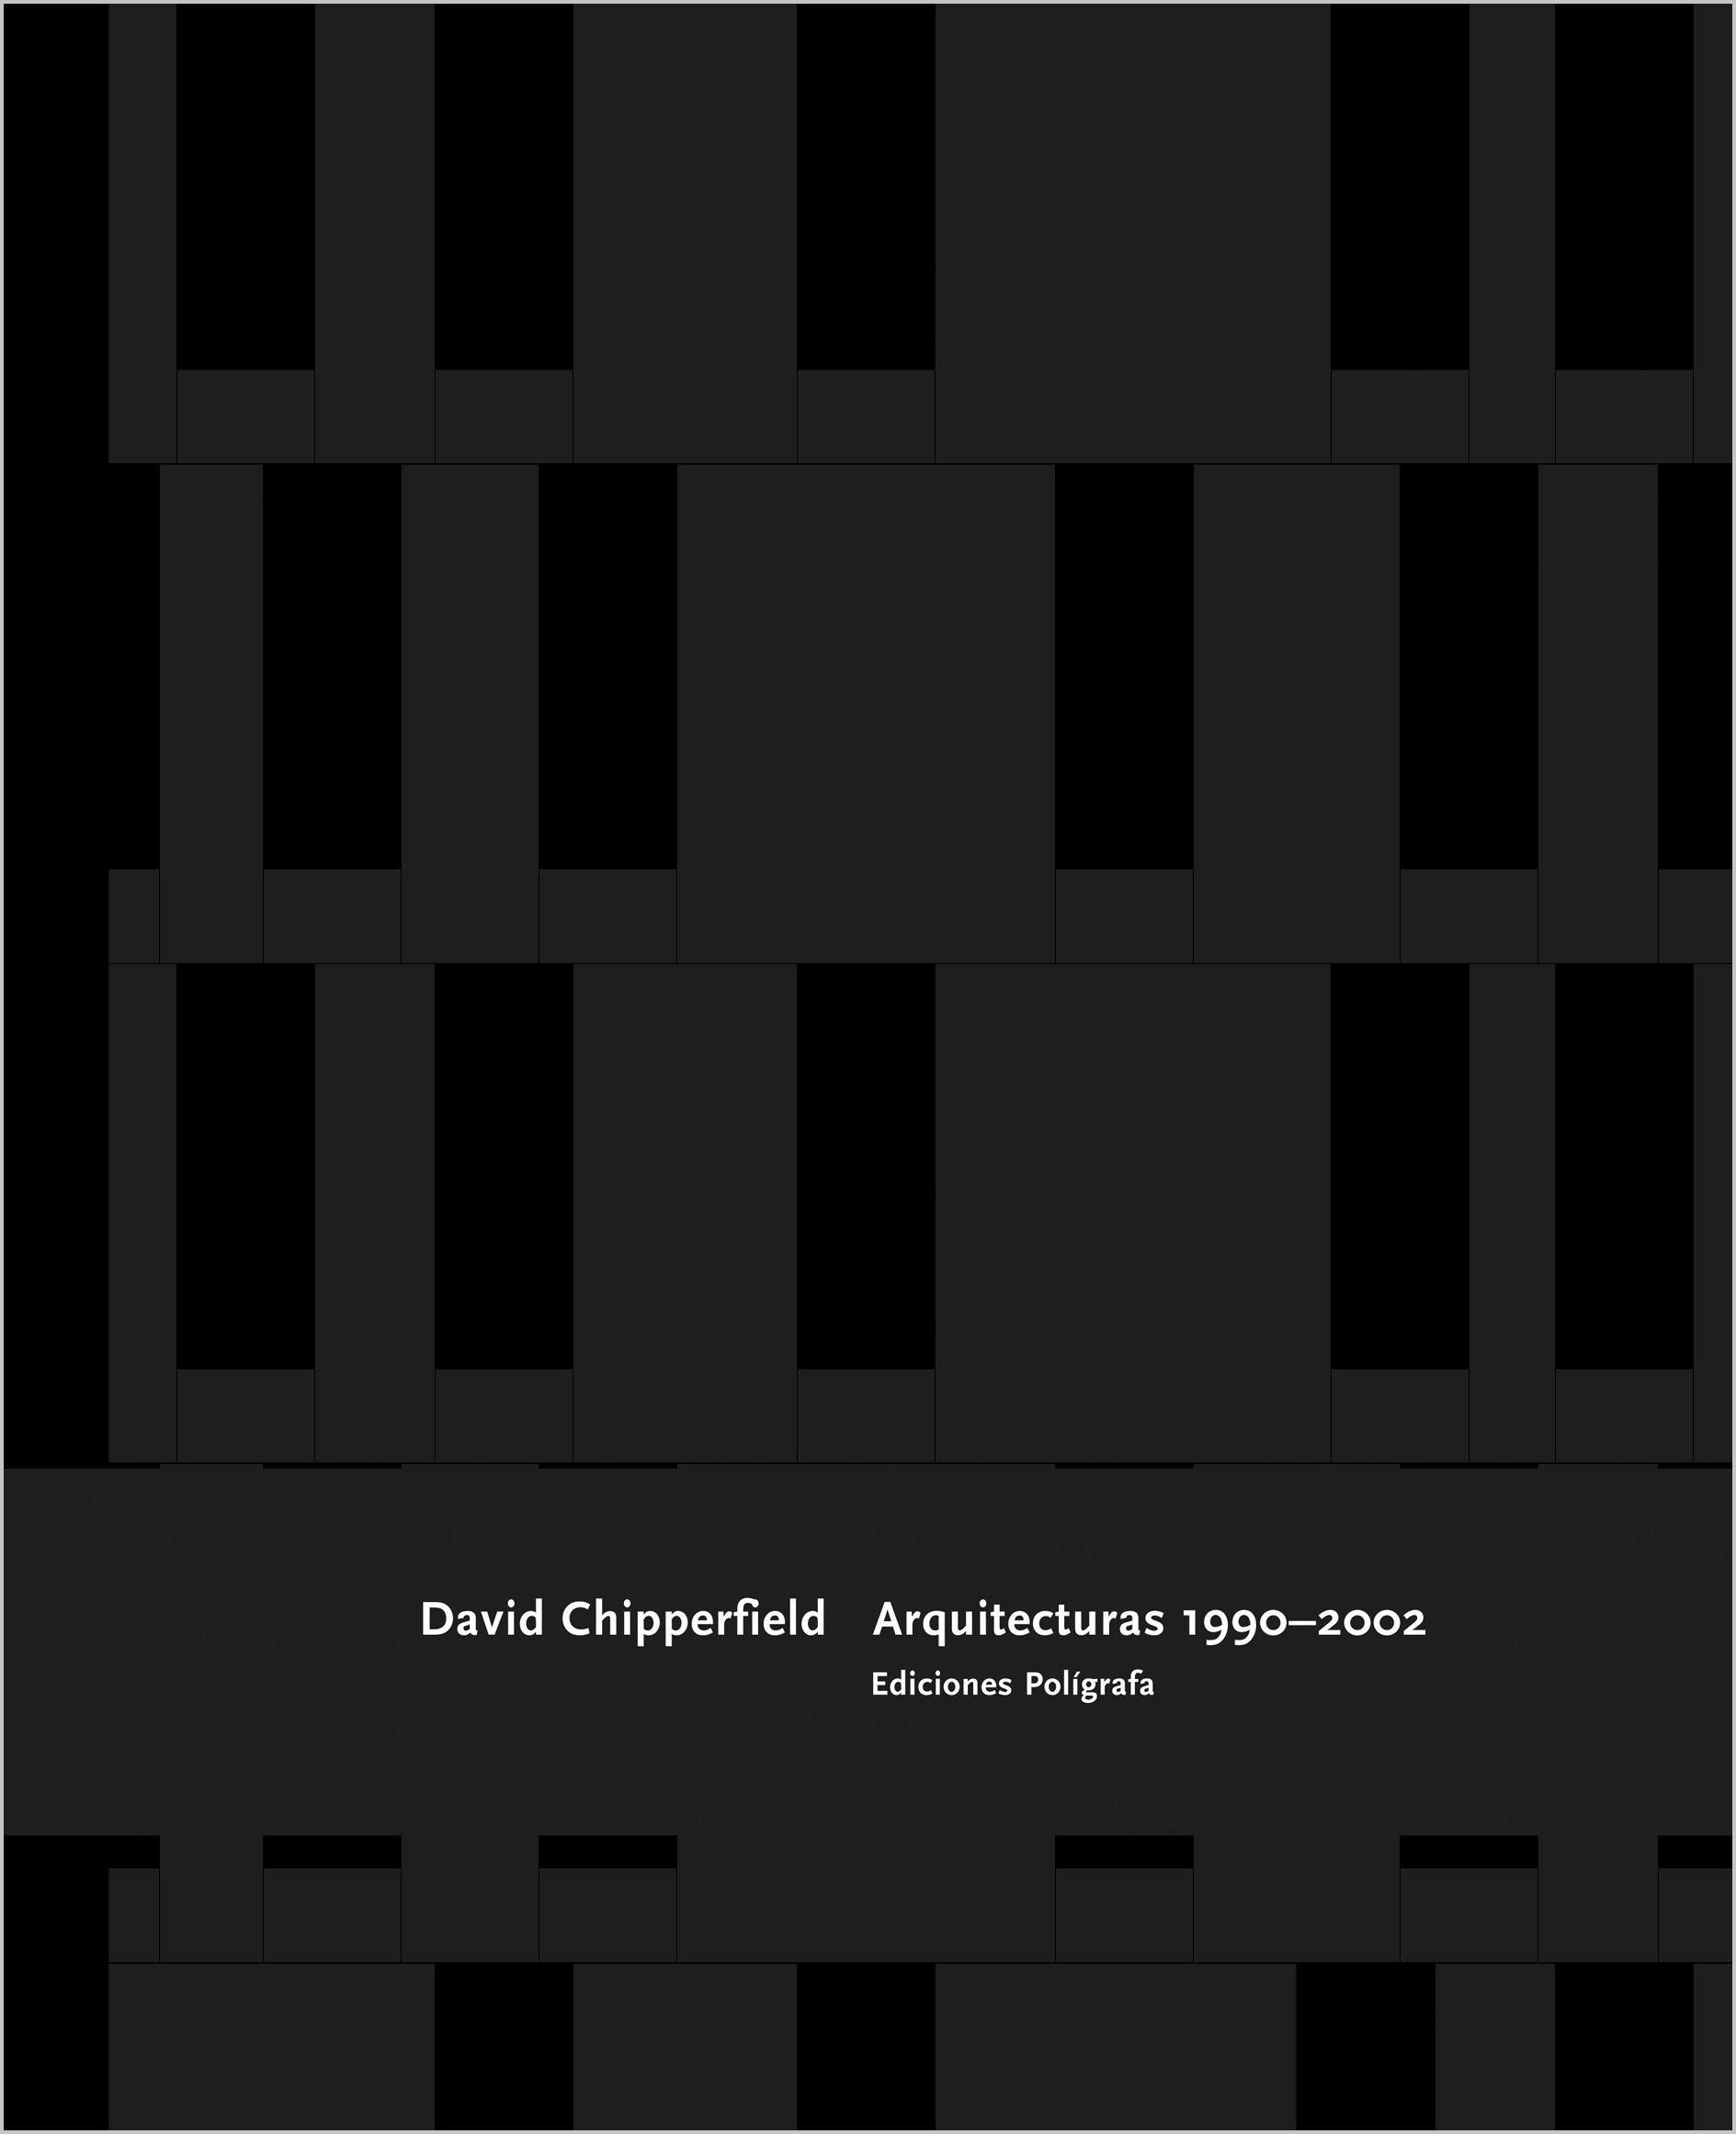 DAVID CHIPPERFIELD. OBRA ARQUITECTÓNICA 1990-2002